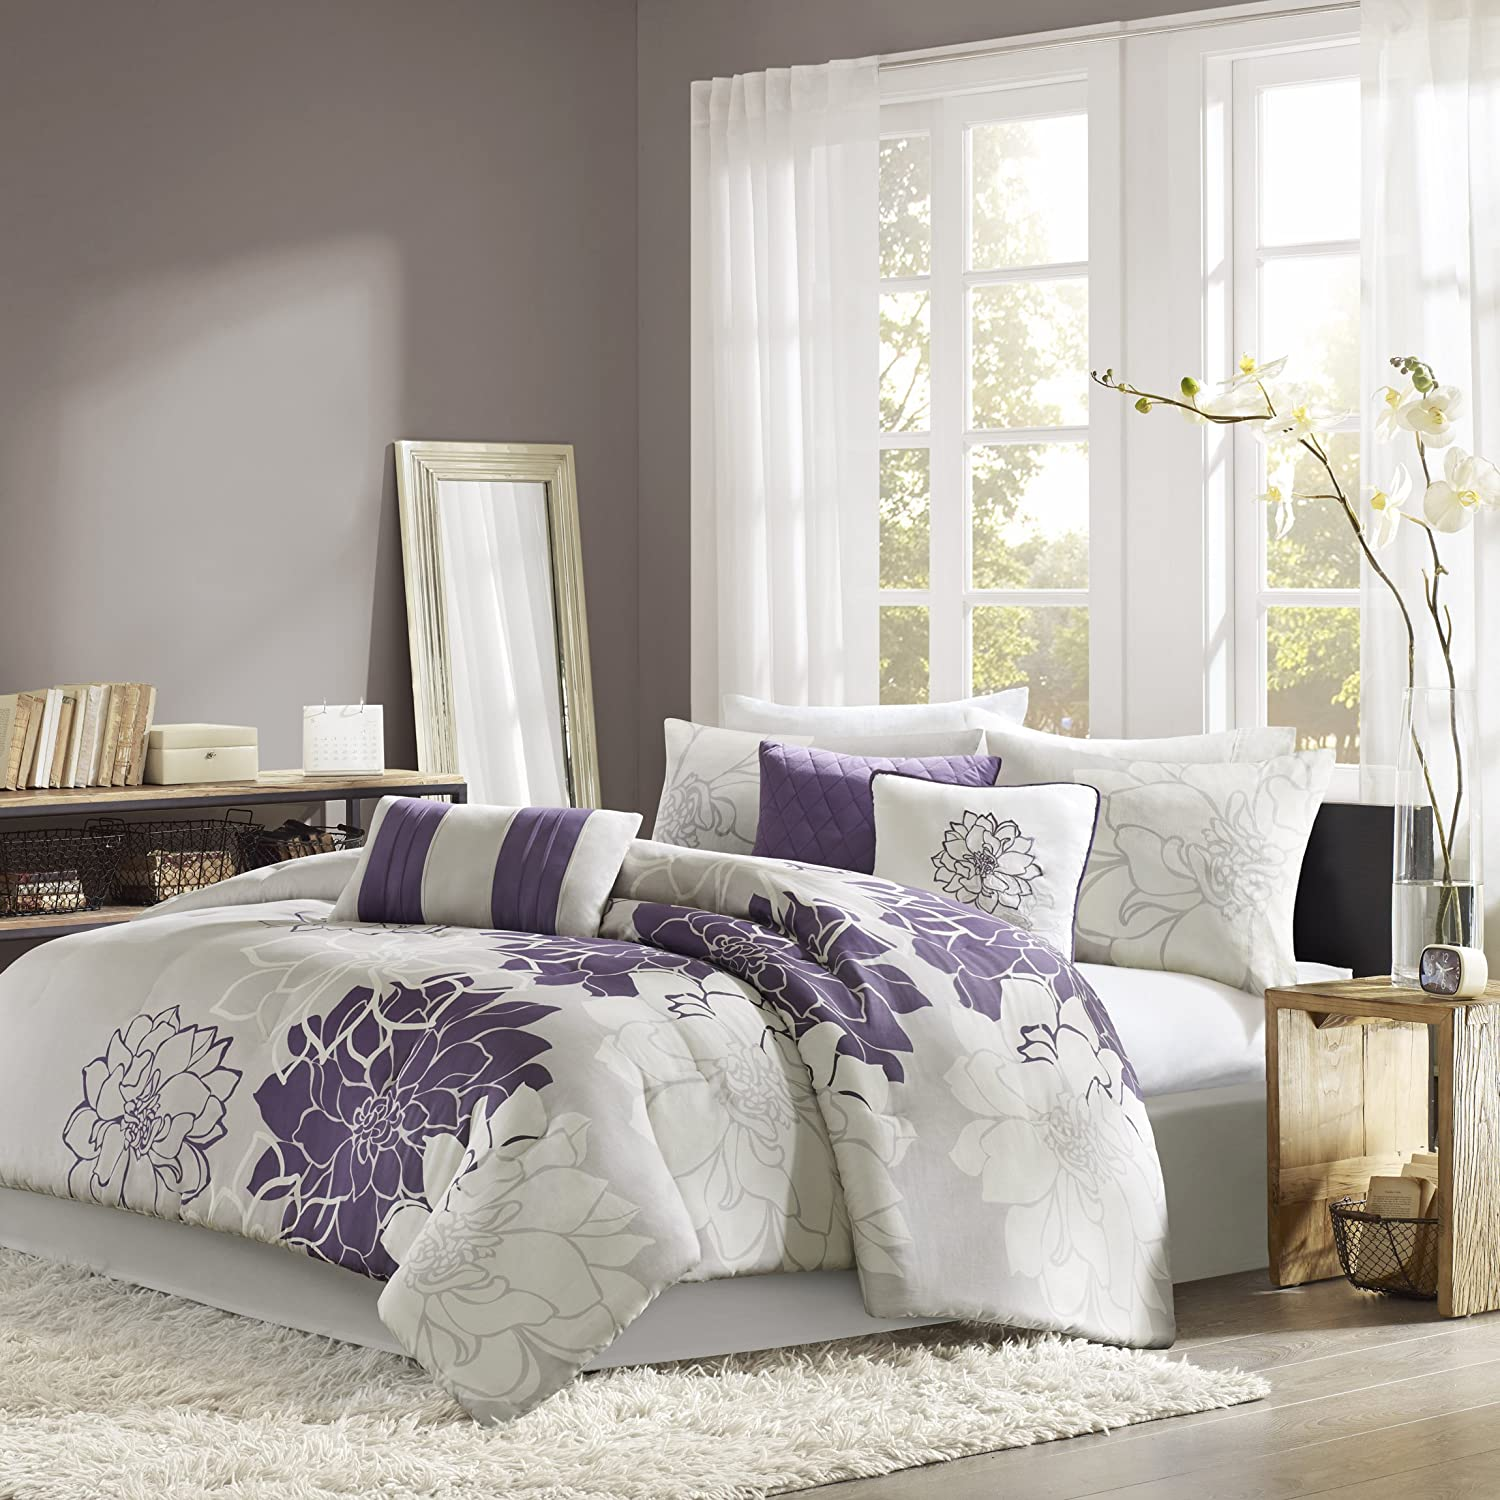 sets winsome set for bedroom full comforter bed love queen bedding uk image purple design